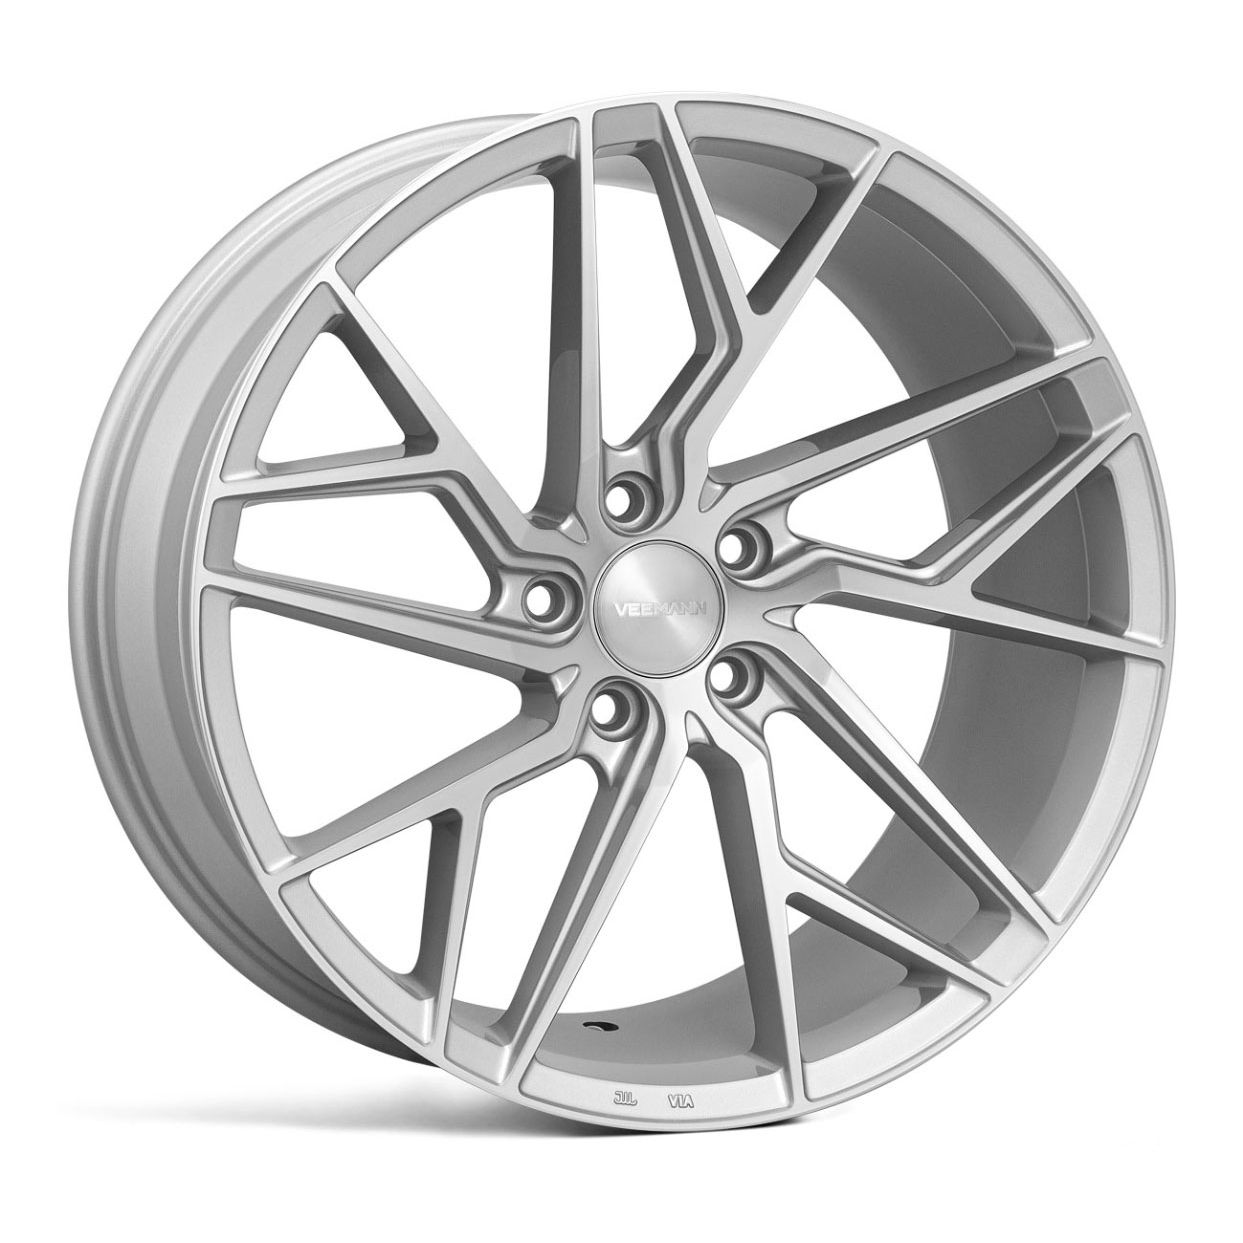 "NEW 19"" VEEMANN V-FS44 ALLOY WHEELS IN SILVER POL WITH WIDER 9.5"" REARS"